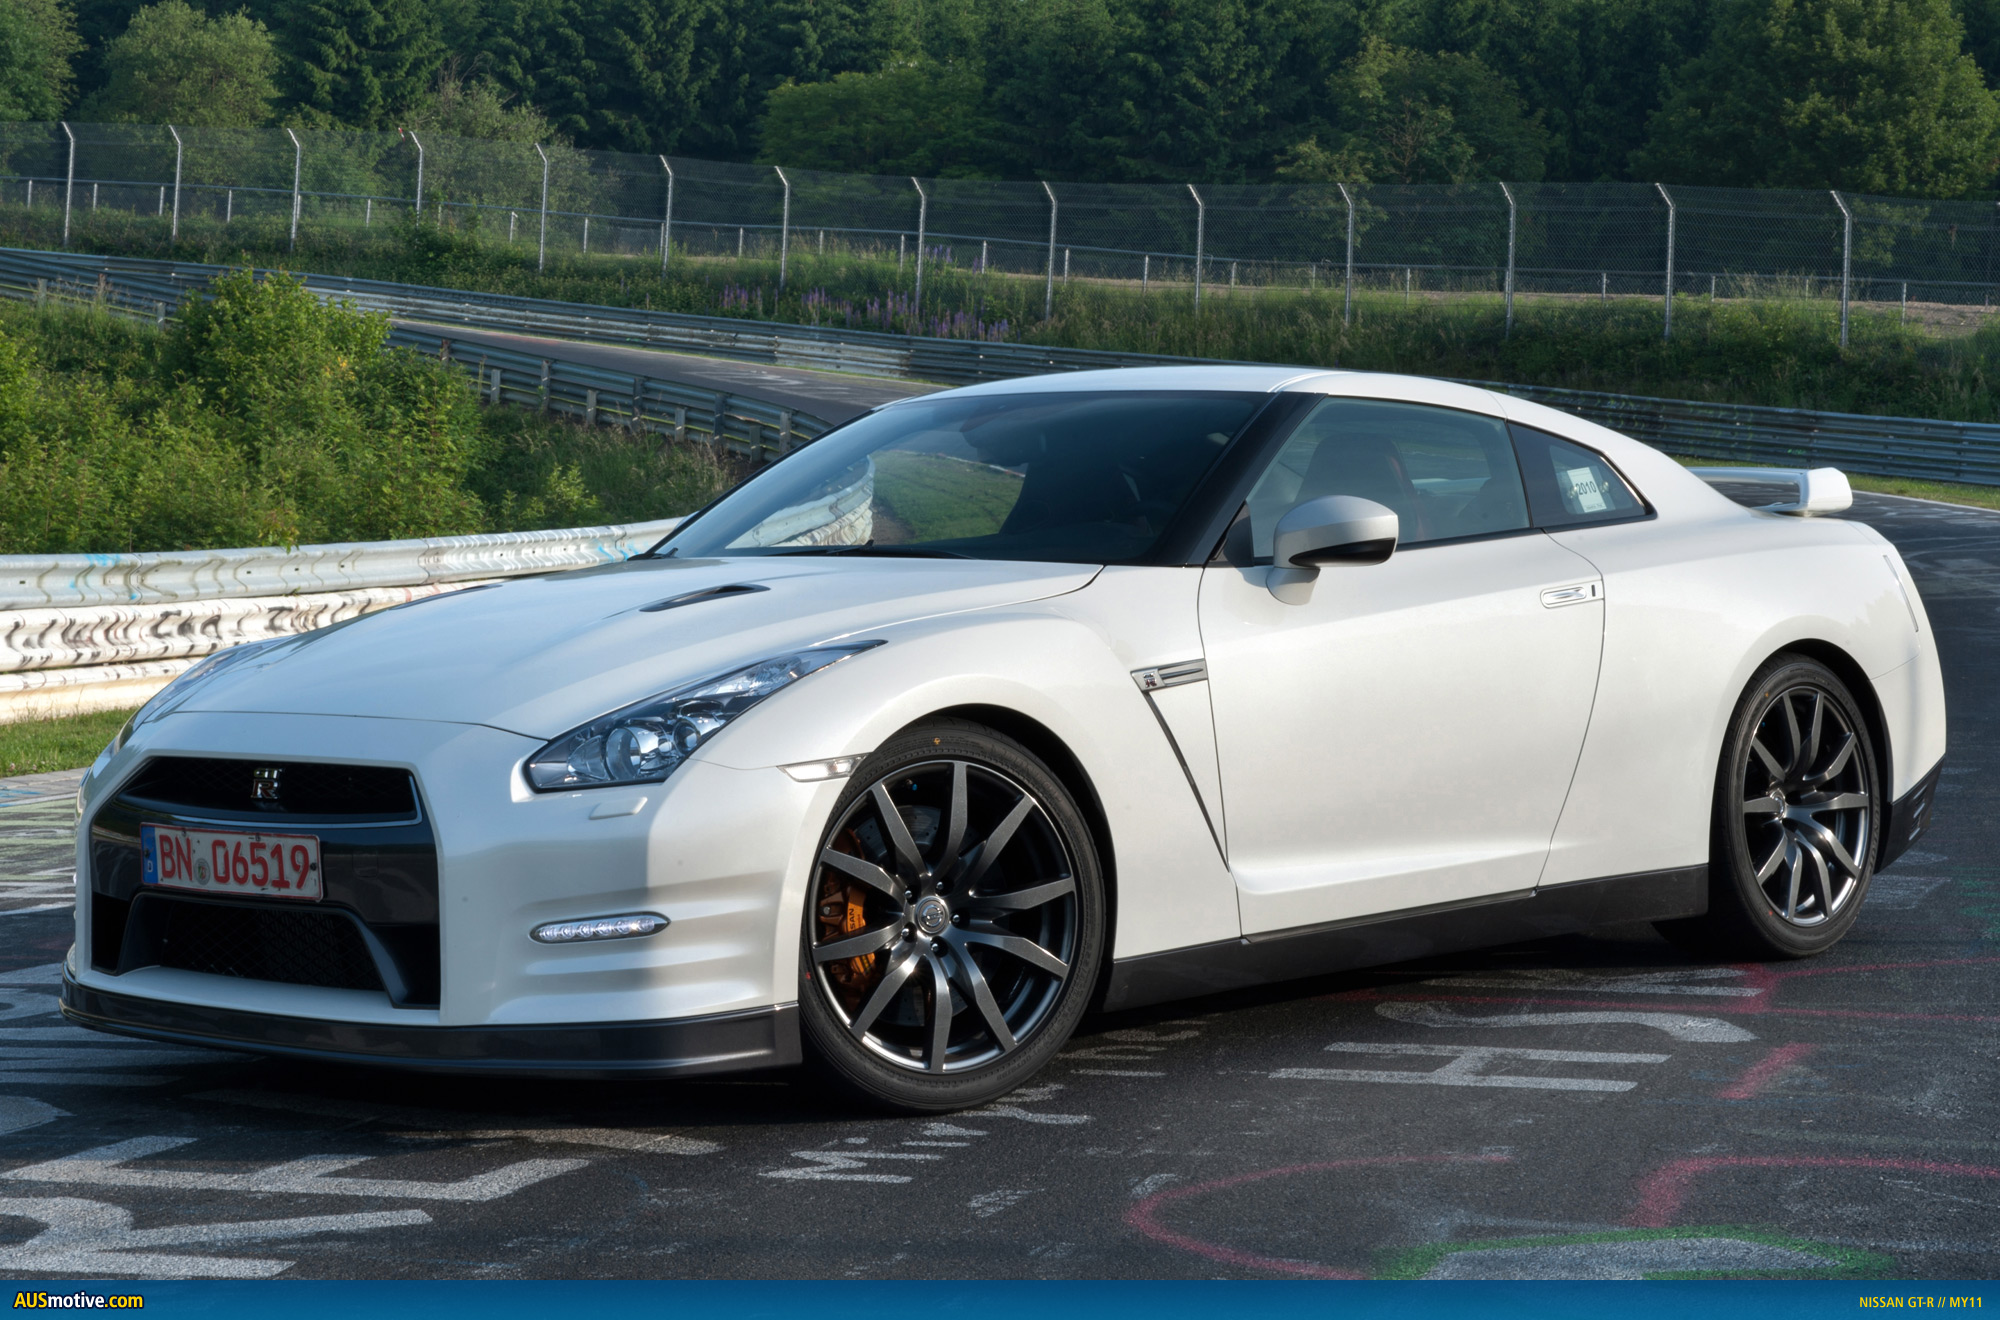 nissan gt r my11 specs released. Black Bedroom Furniture Sets. Home Design Ideas